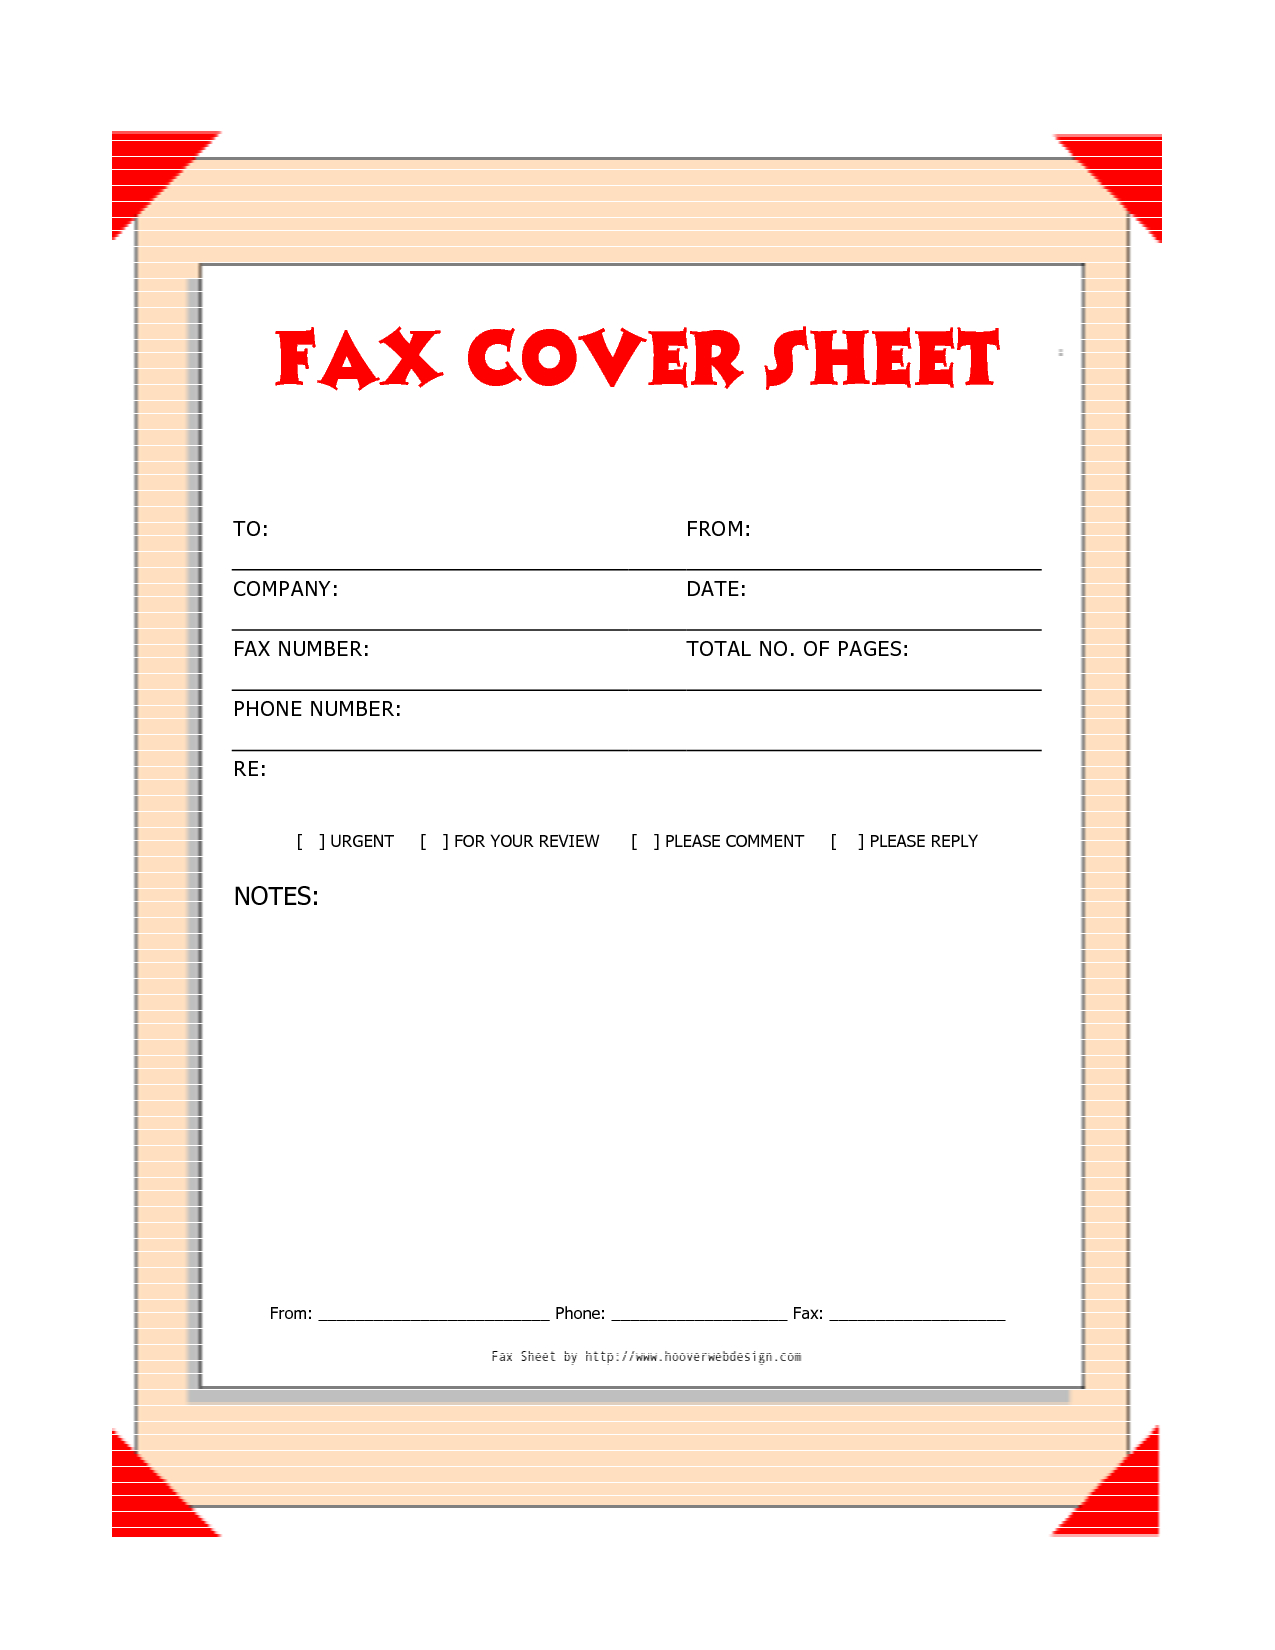 Free Downloads Fax Covers Sheets | Free Printable Fax Cover Sheet - Free Printable Fax Cover Sheet Pdf